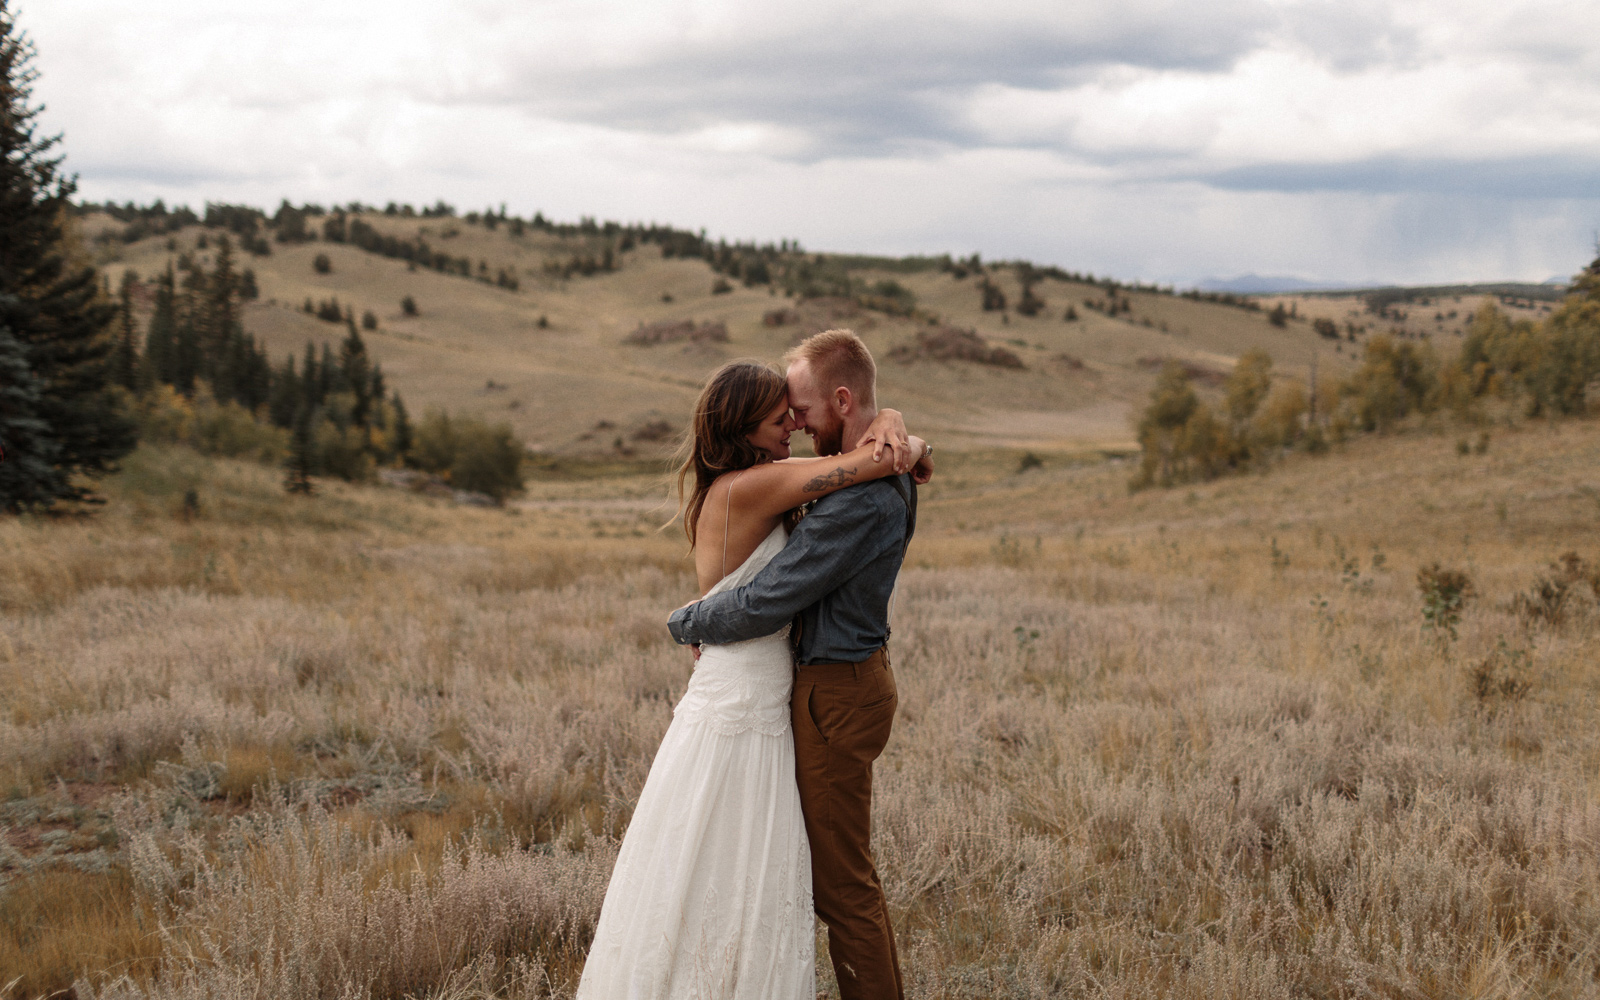 Jefferson-Colorado-Wedding-Photographer-Candice-and-TJ-73.jpg